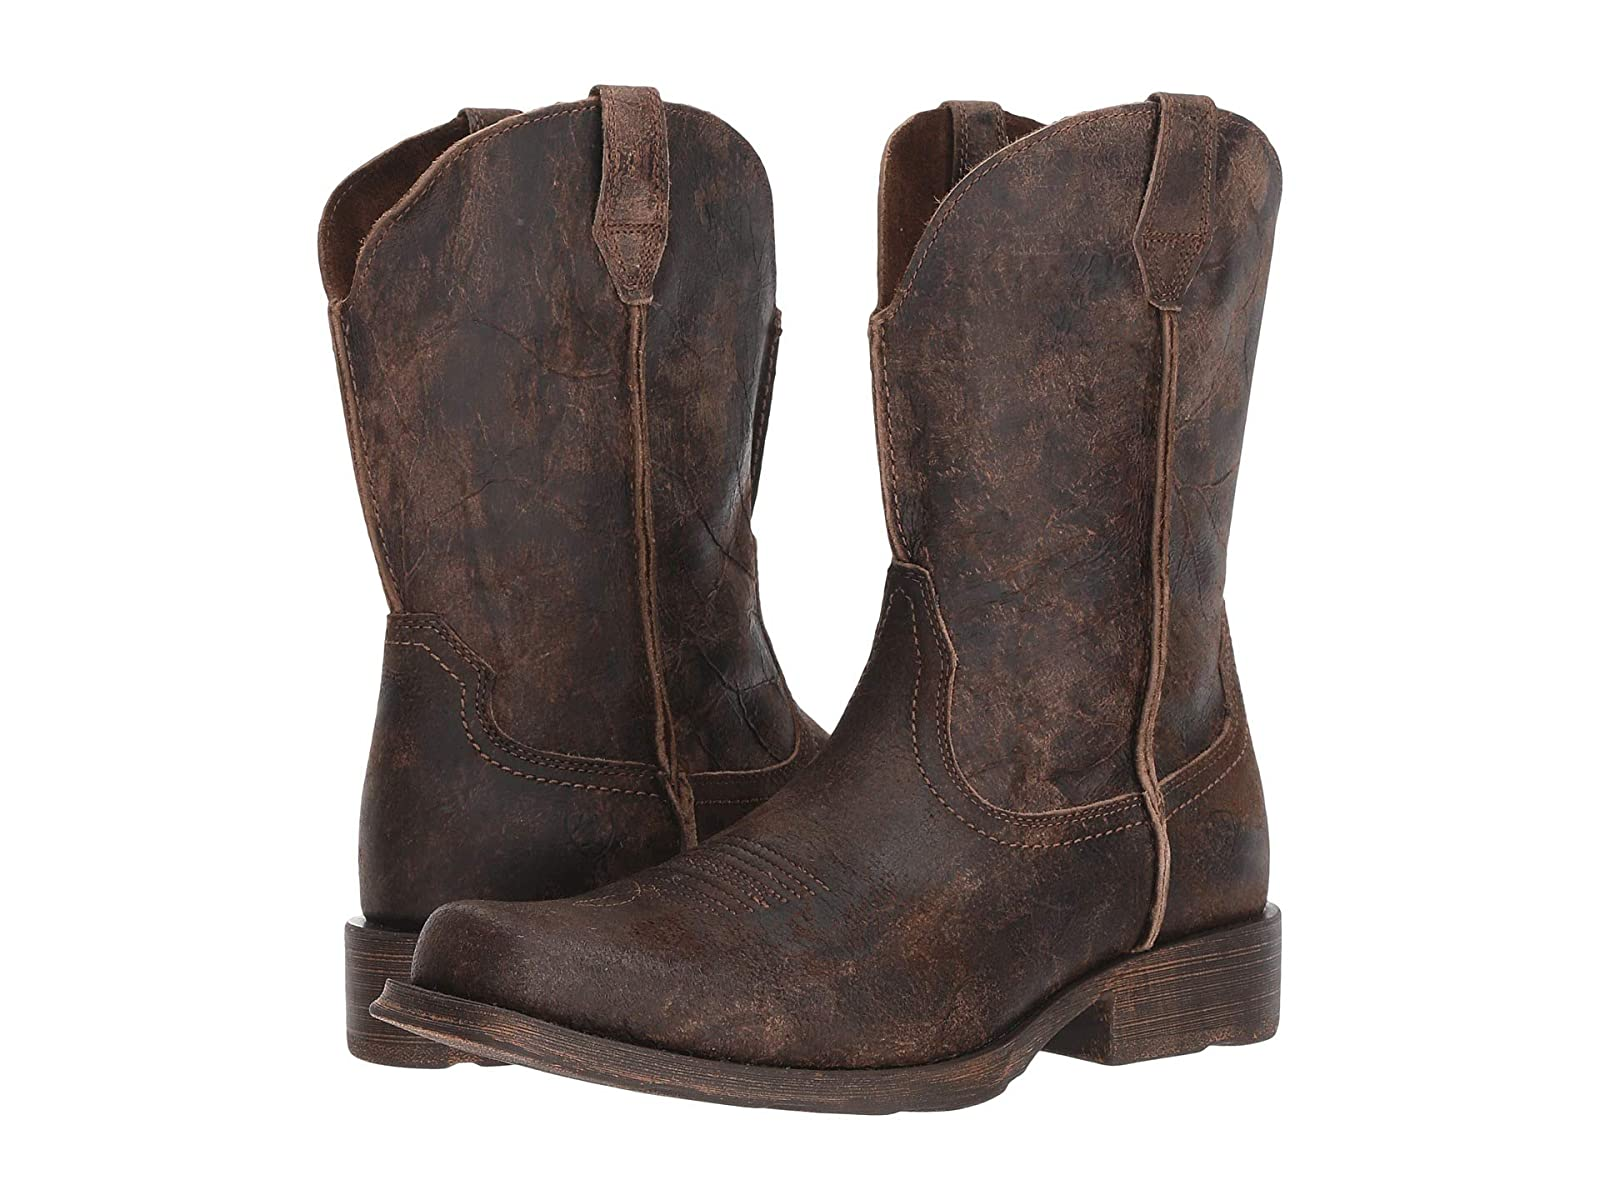 Ariat Ariat RamblerSelling fashionable and eye-catching shoes